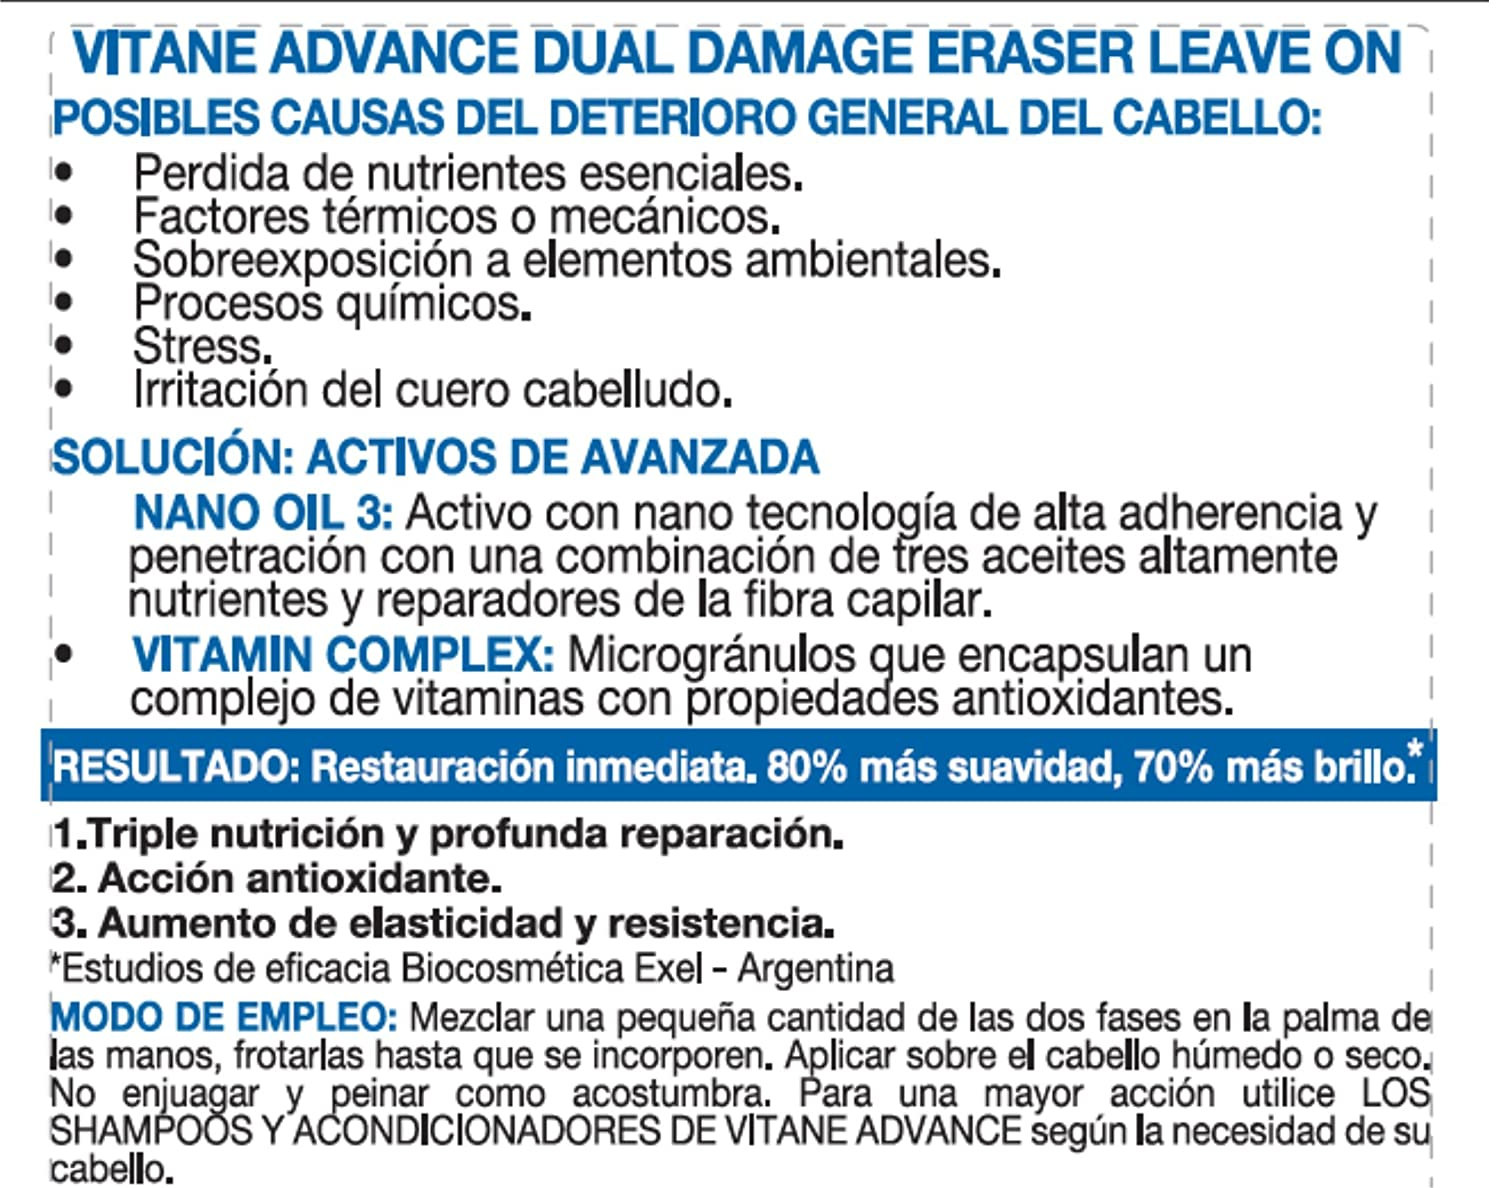 Amazon.com : VITANE DUAL DAMAGE ERASER, Las dos fases se mezclan para dejar el cabello recuperado, fuerte y brillante. The two phases are mixed to le ave ...